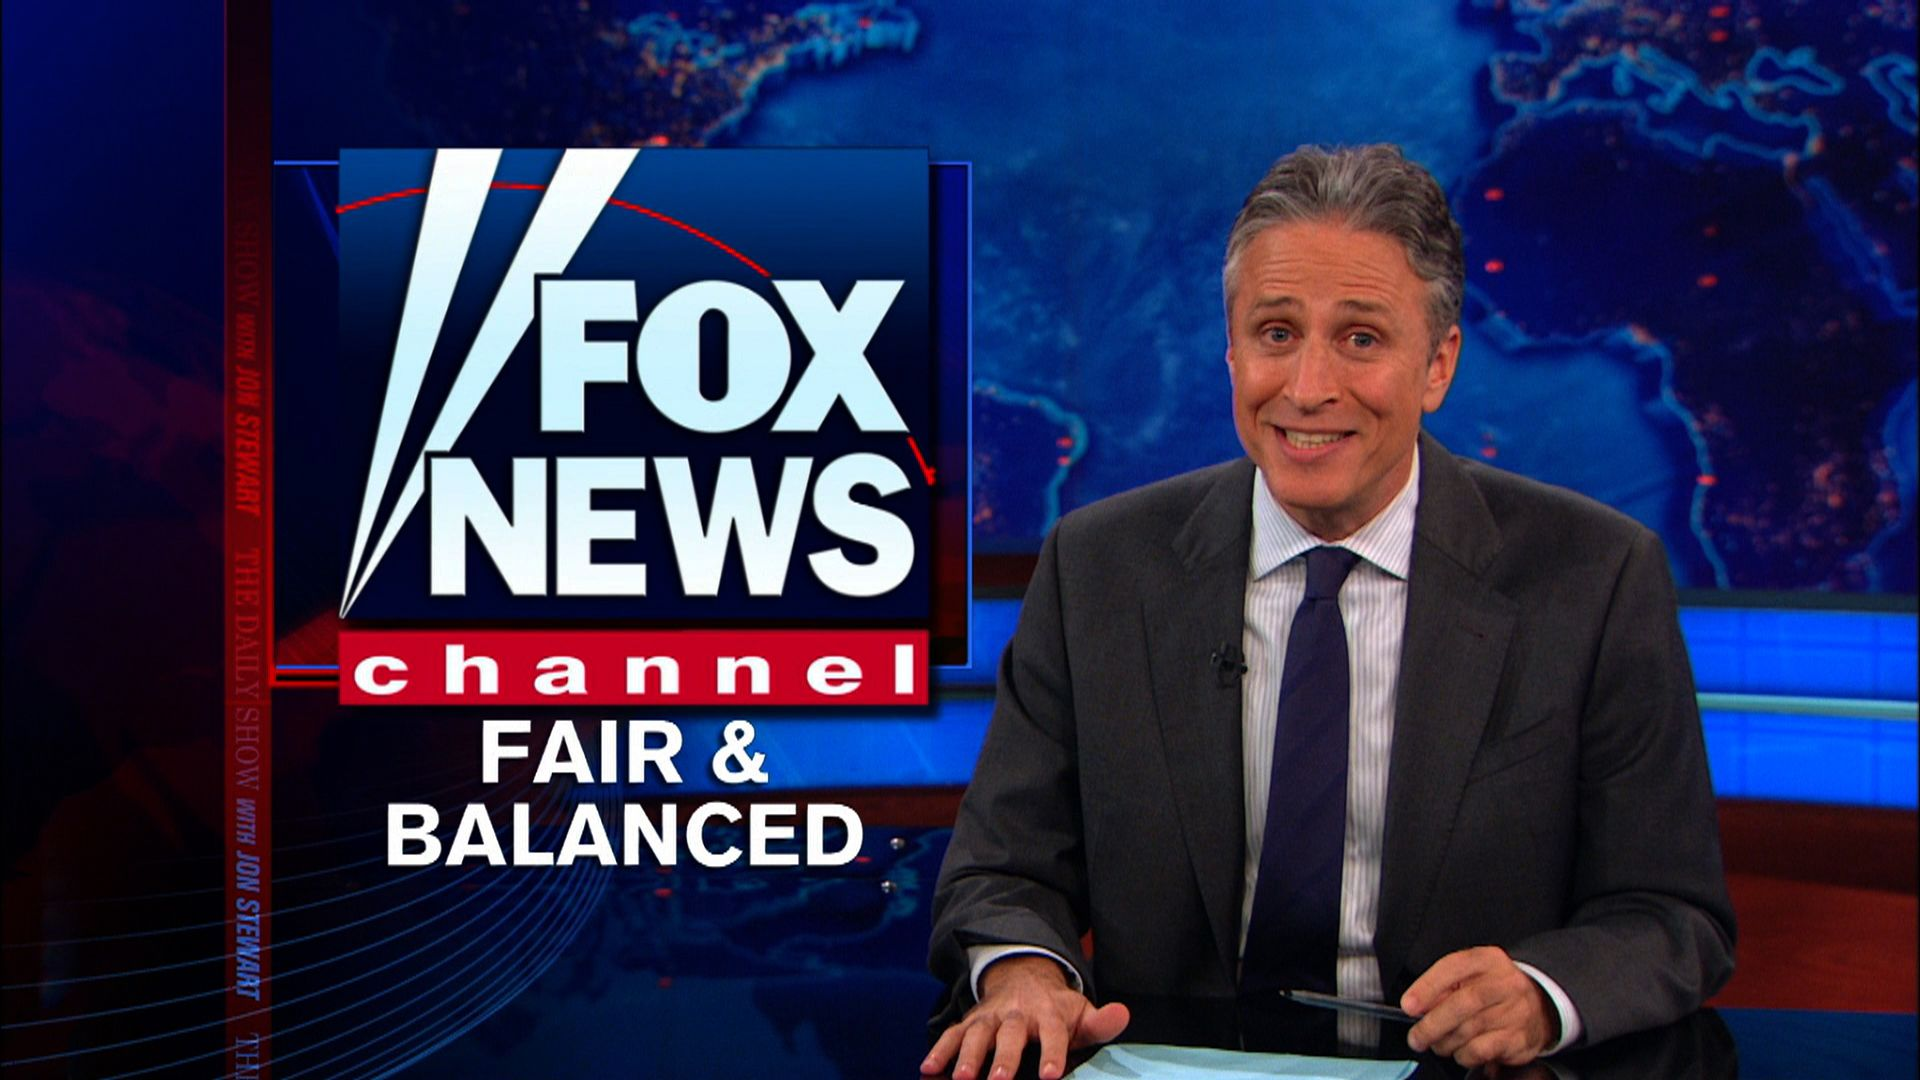 Fox news fair and balanced logo